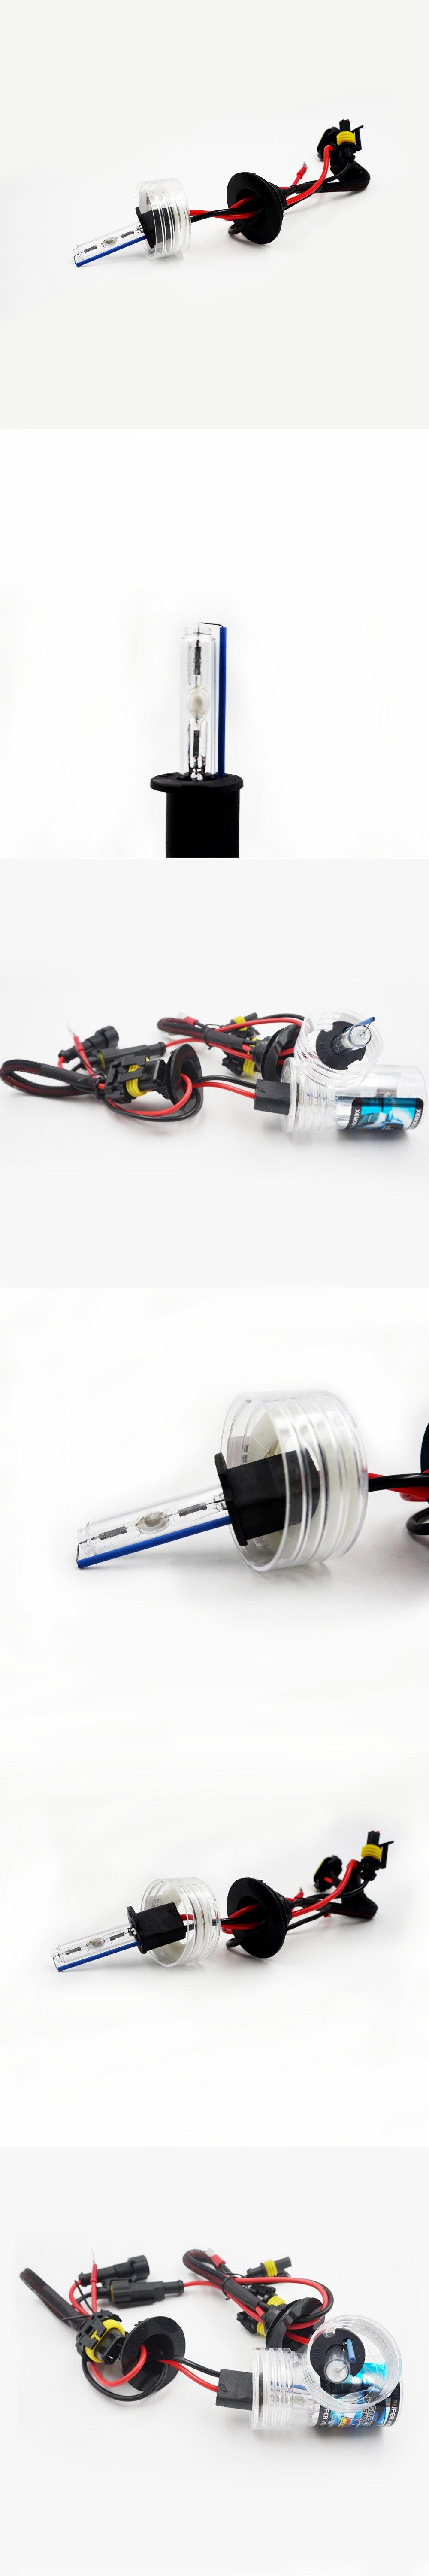 socket lamp approx light bulb side x voltage xenon dashboard itm car size white type w l dc plate color working wattage number led wedge specification